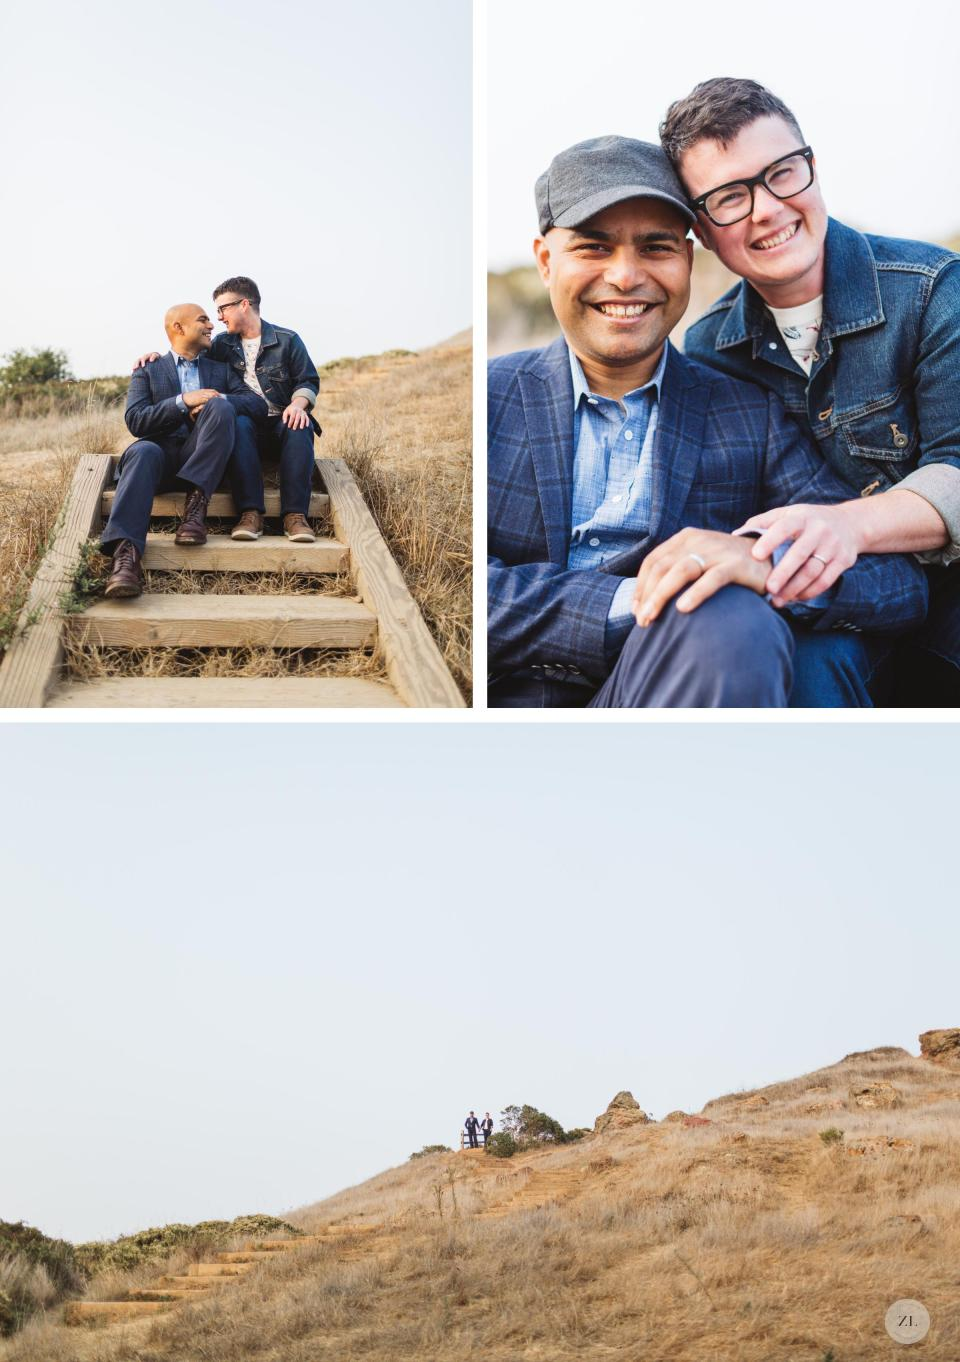 corona heights park landscape in the summertime with LGBTQ couple on their love shoot